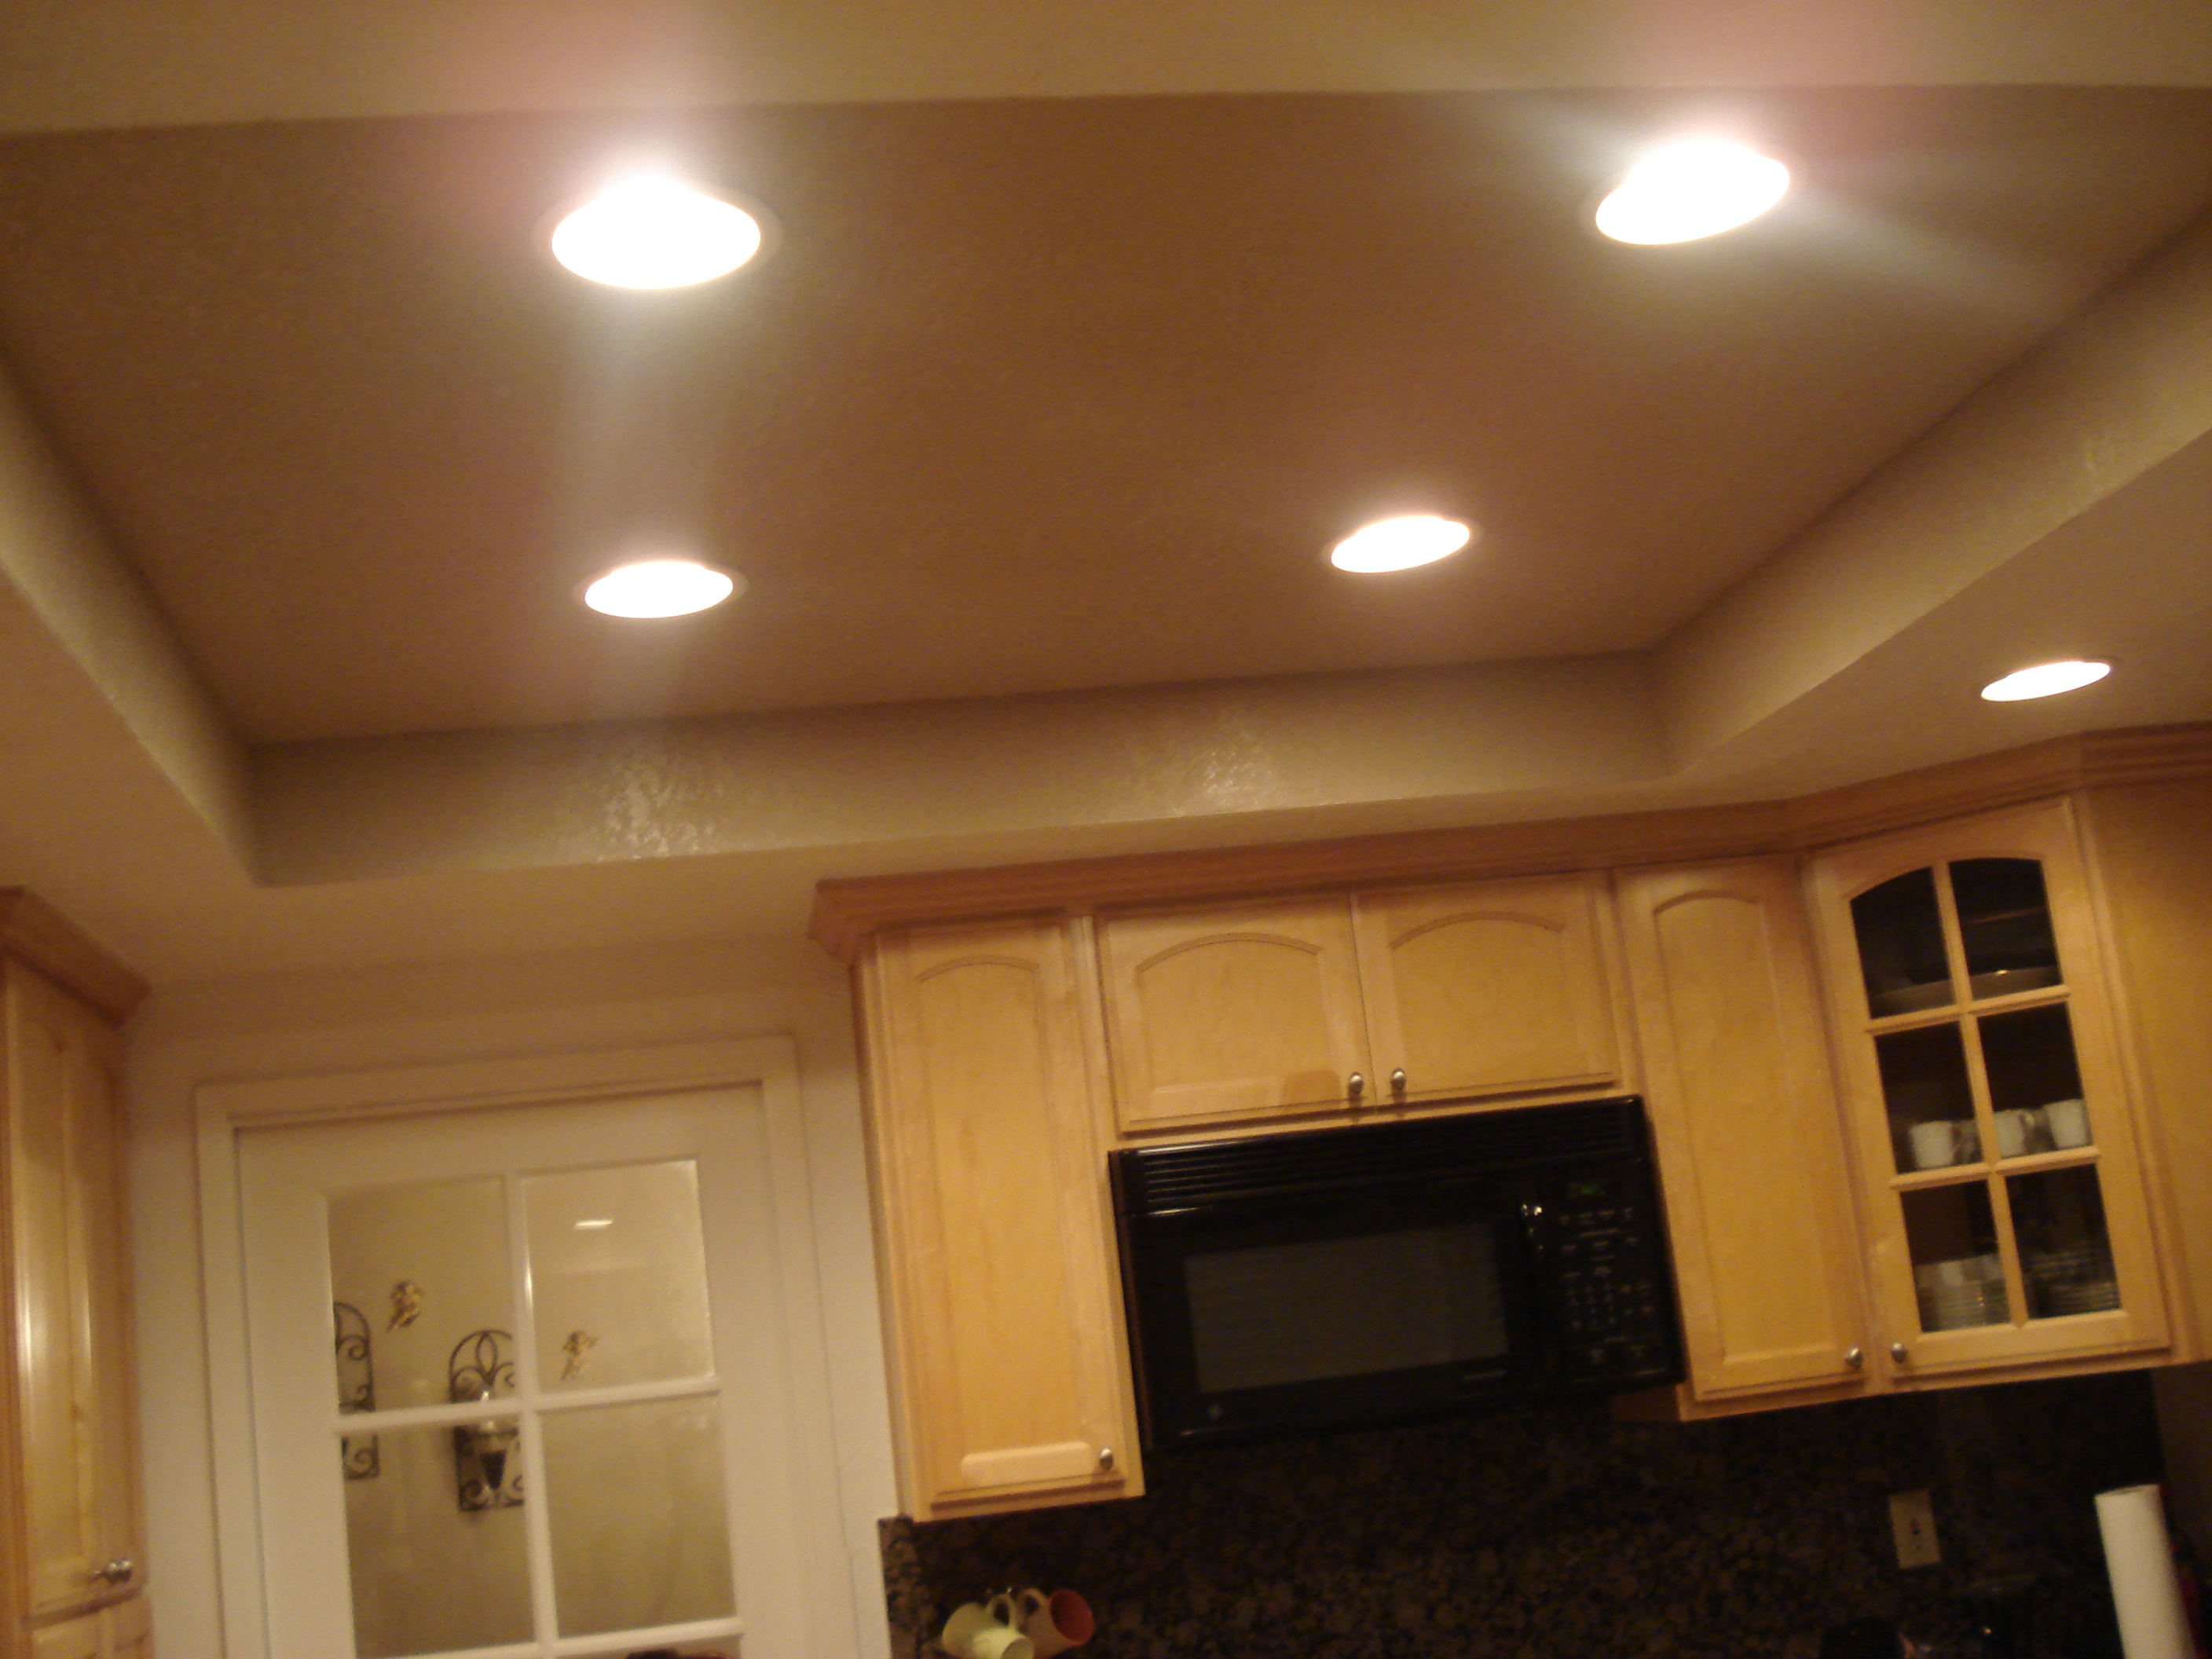 Interior Recessed Lighting Design Recessed Electric Bedroom Lighting Kitchen S Decoration Ideas Utilitech Recessed Lighting Recessed